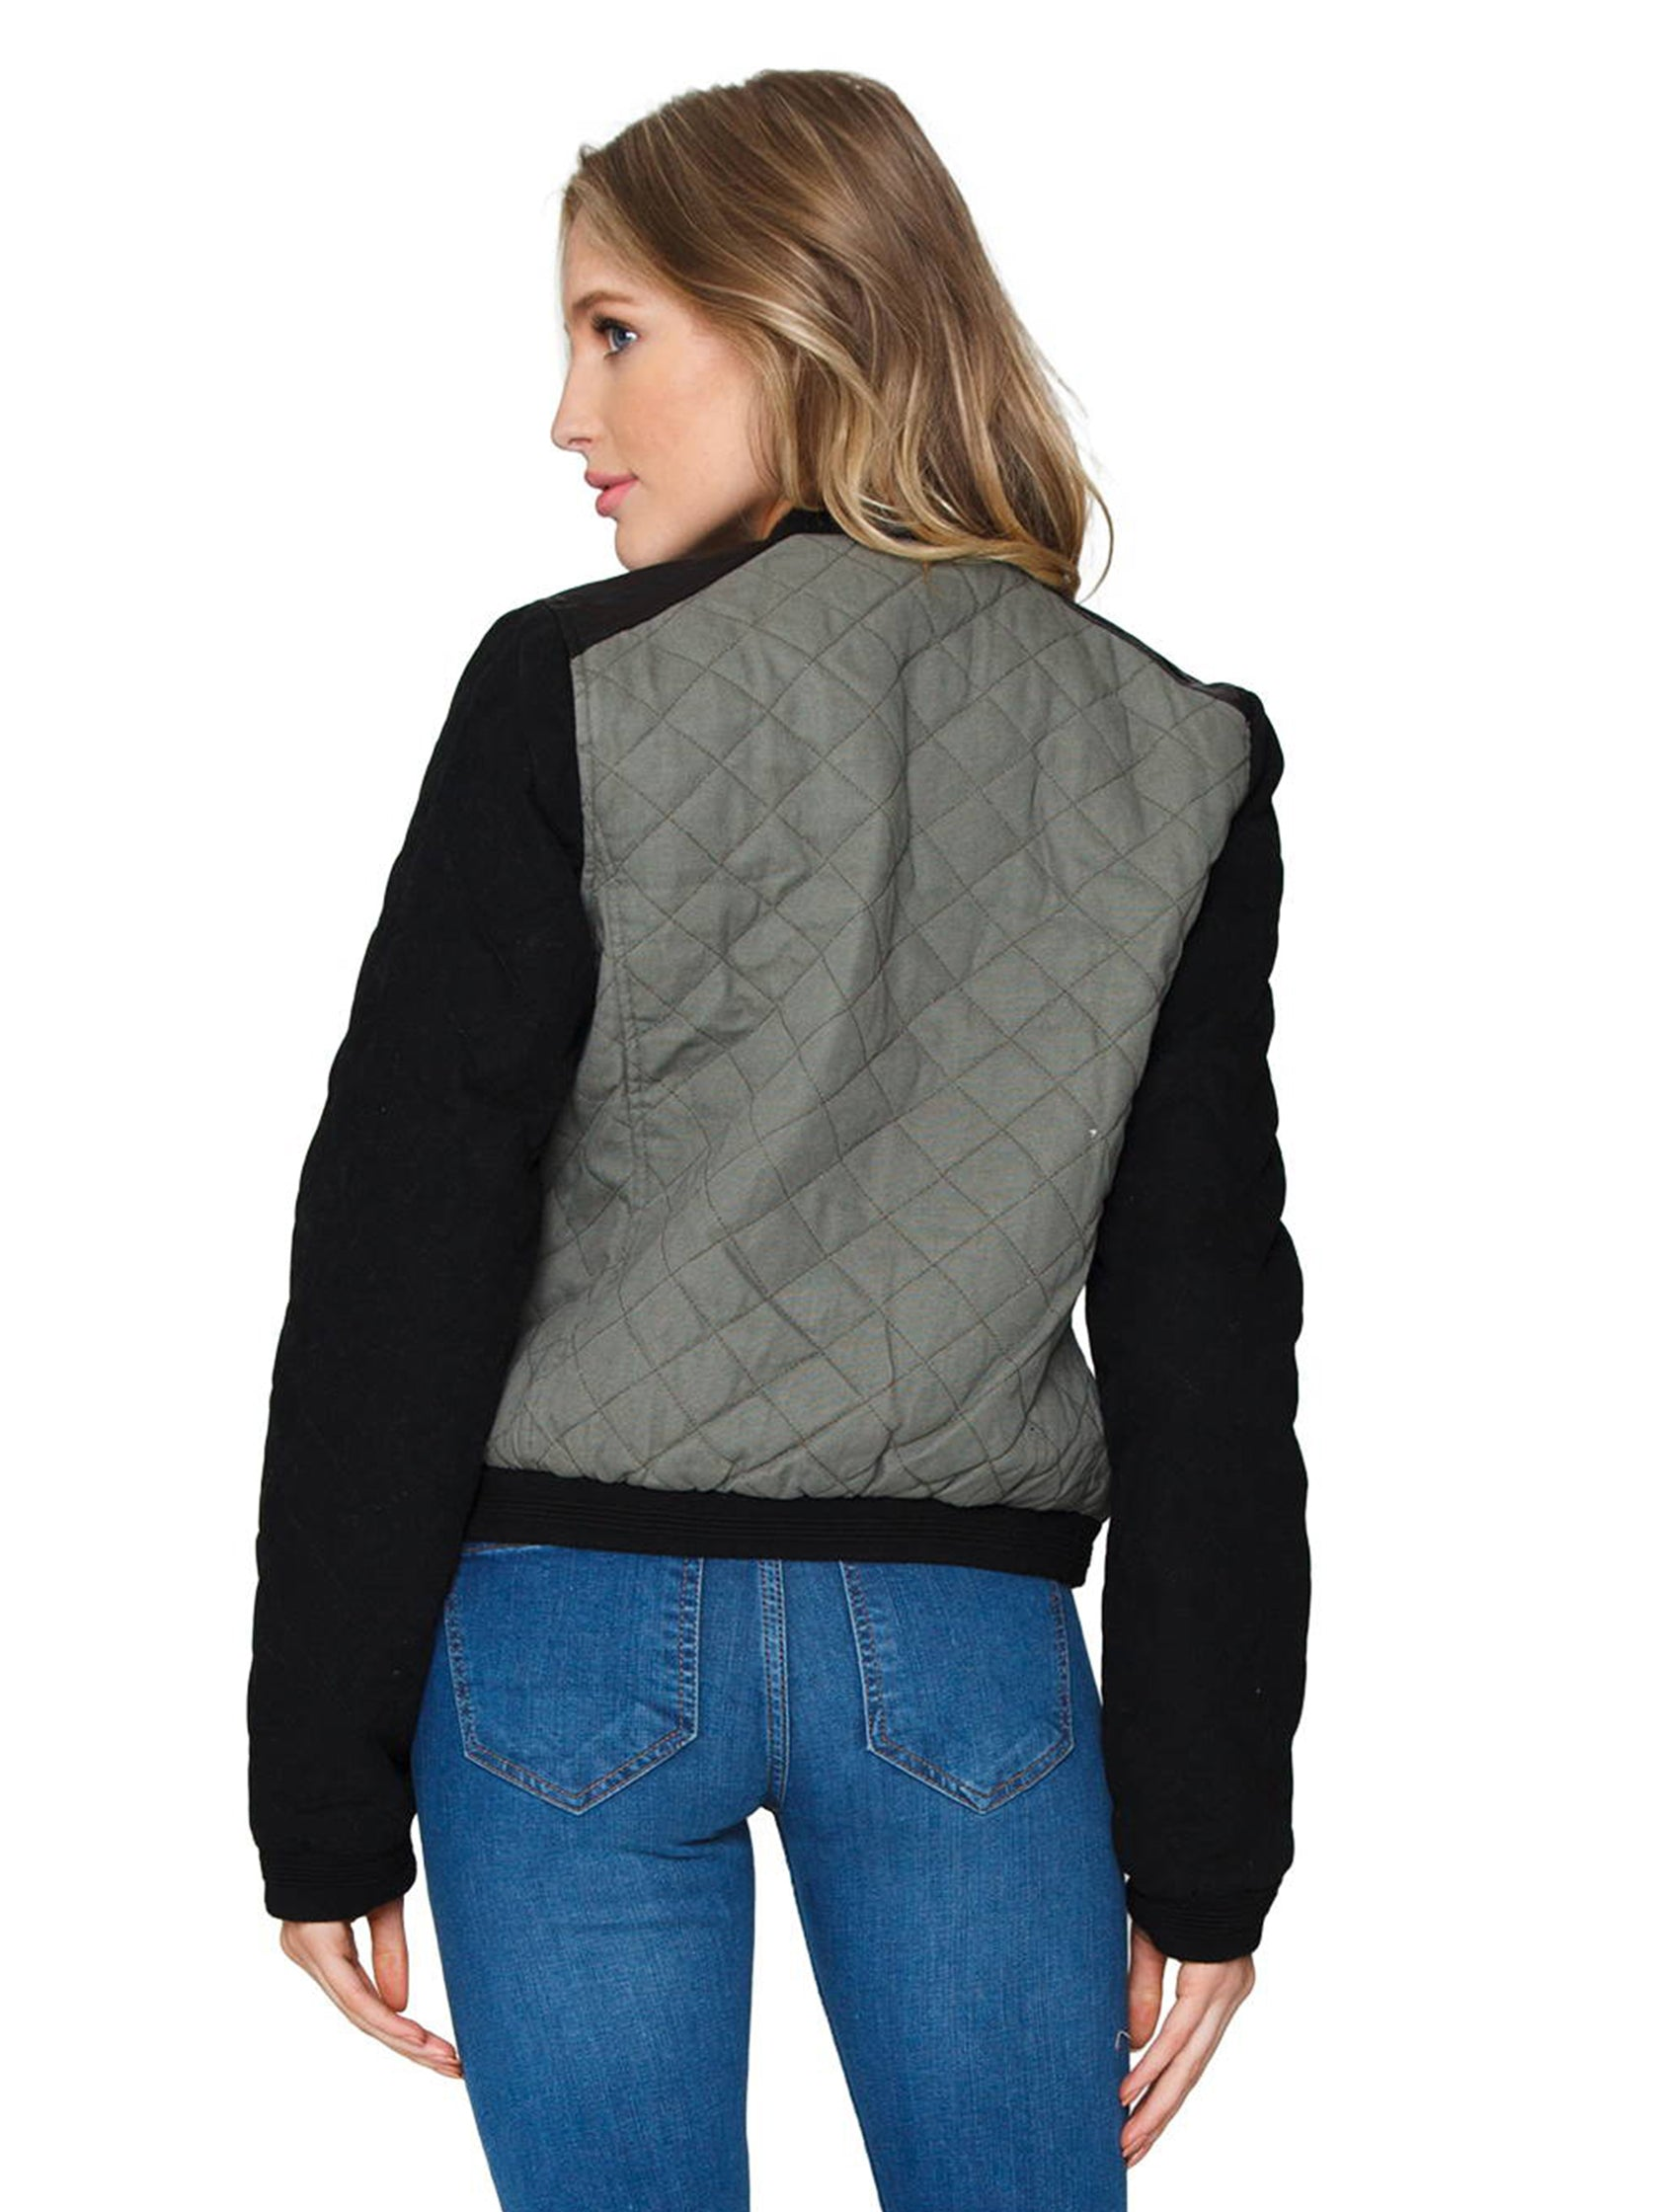 Women outfit in a jacket rental from FashionPass called Quilted Bomber Jacket